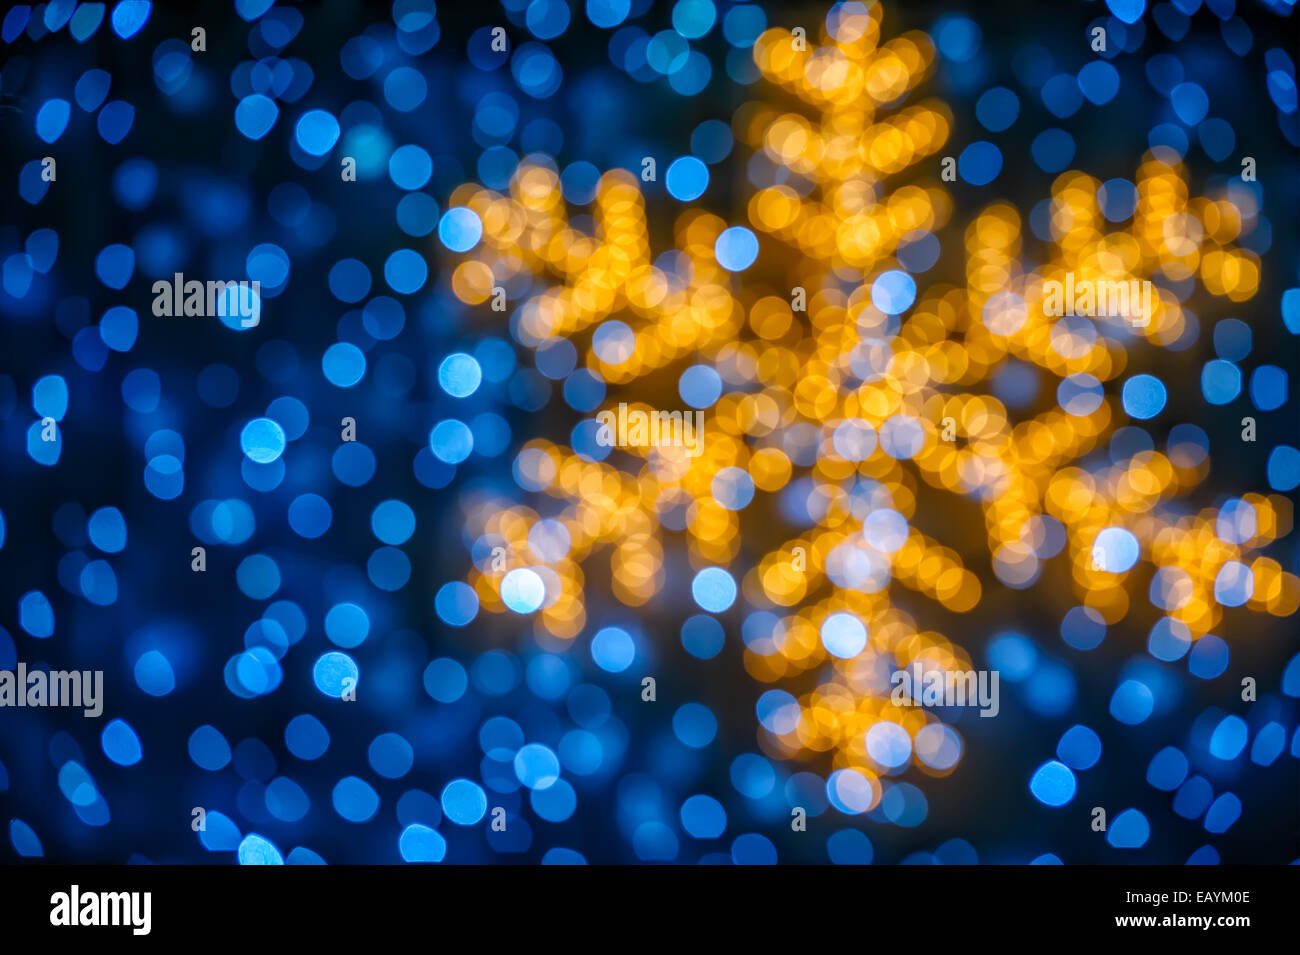 Christmas background with blurred snowflake and blue lights - Stock Image